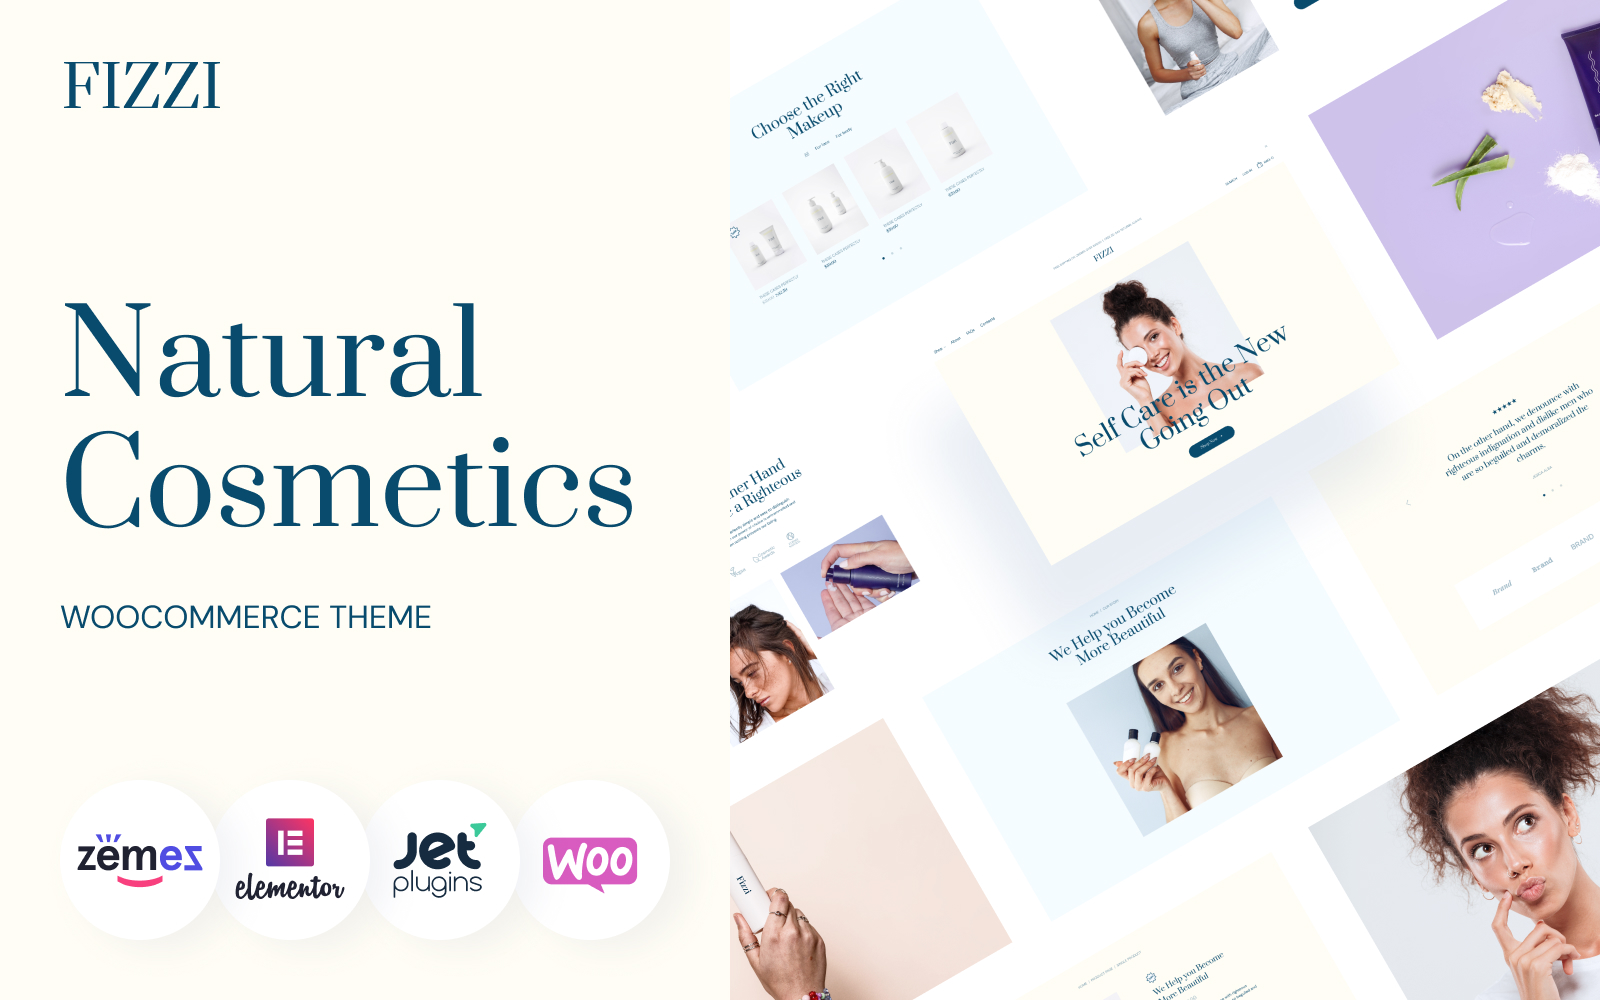 Responsywny motyw WooCommerce Natural Cosmetics Website Template - Fizzi #139732